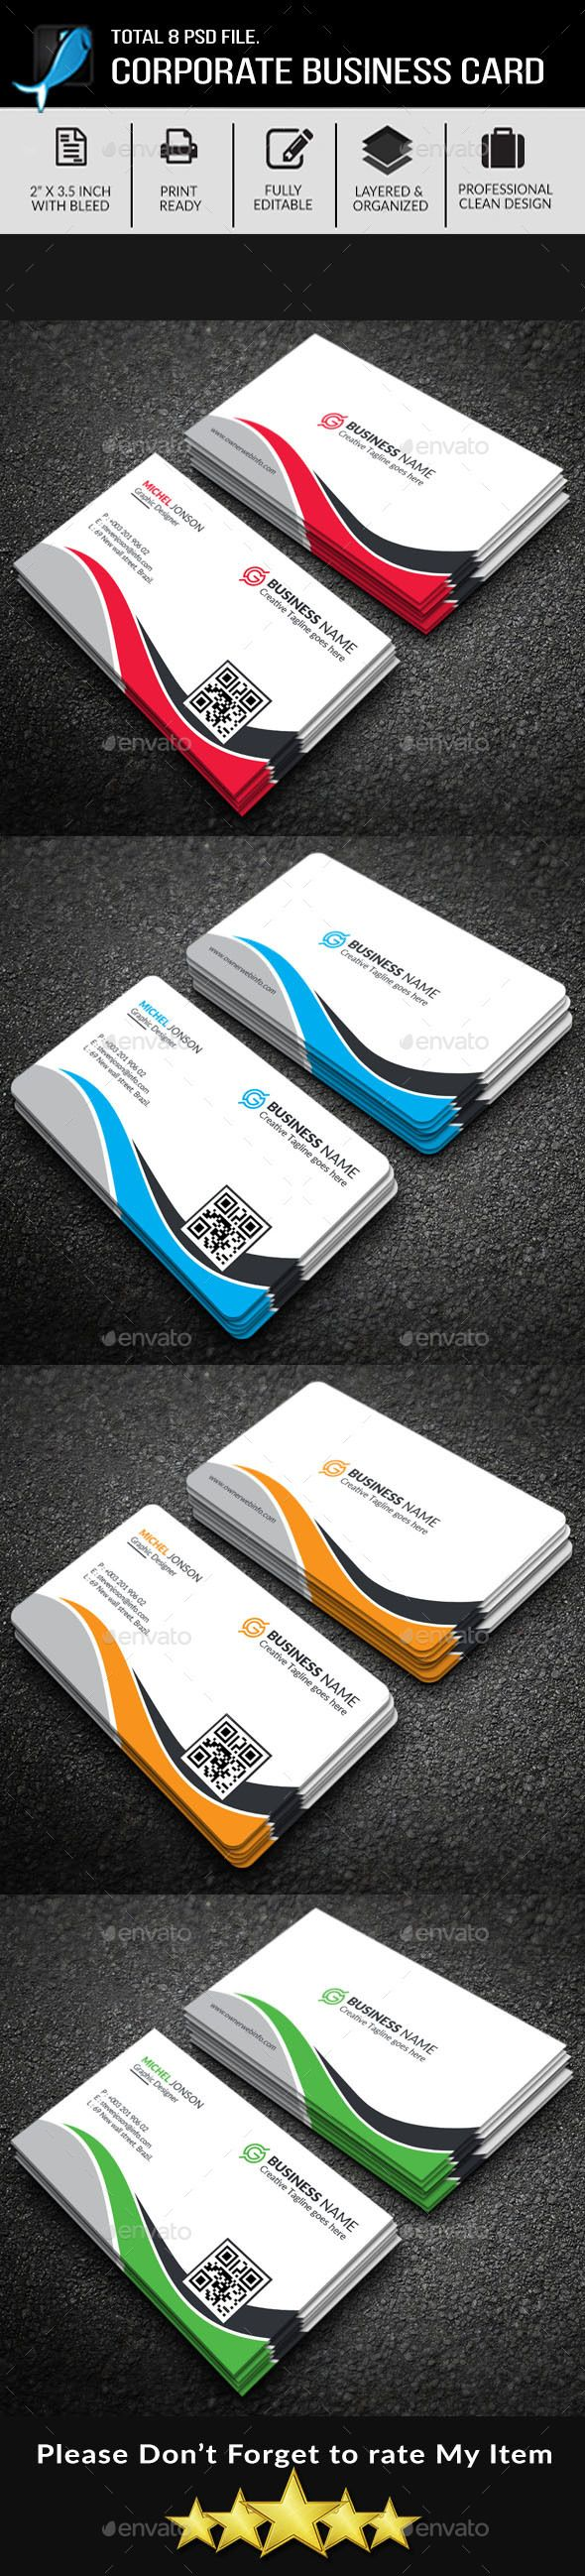 Business Card Business Cards Card Templates And Buy Business Cards - Buy business card template